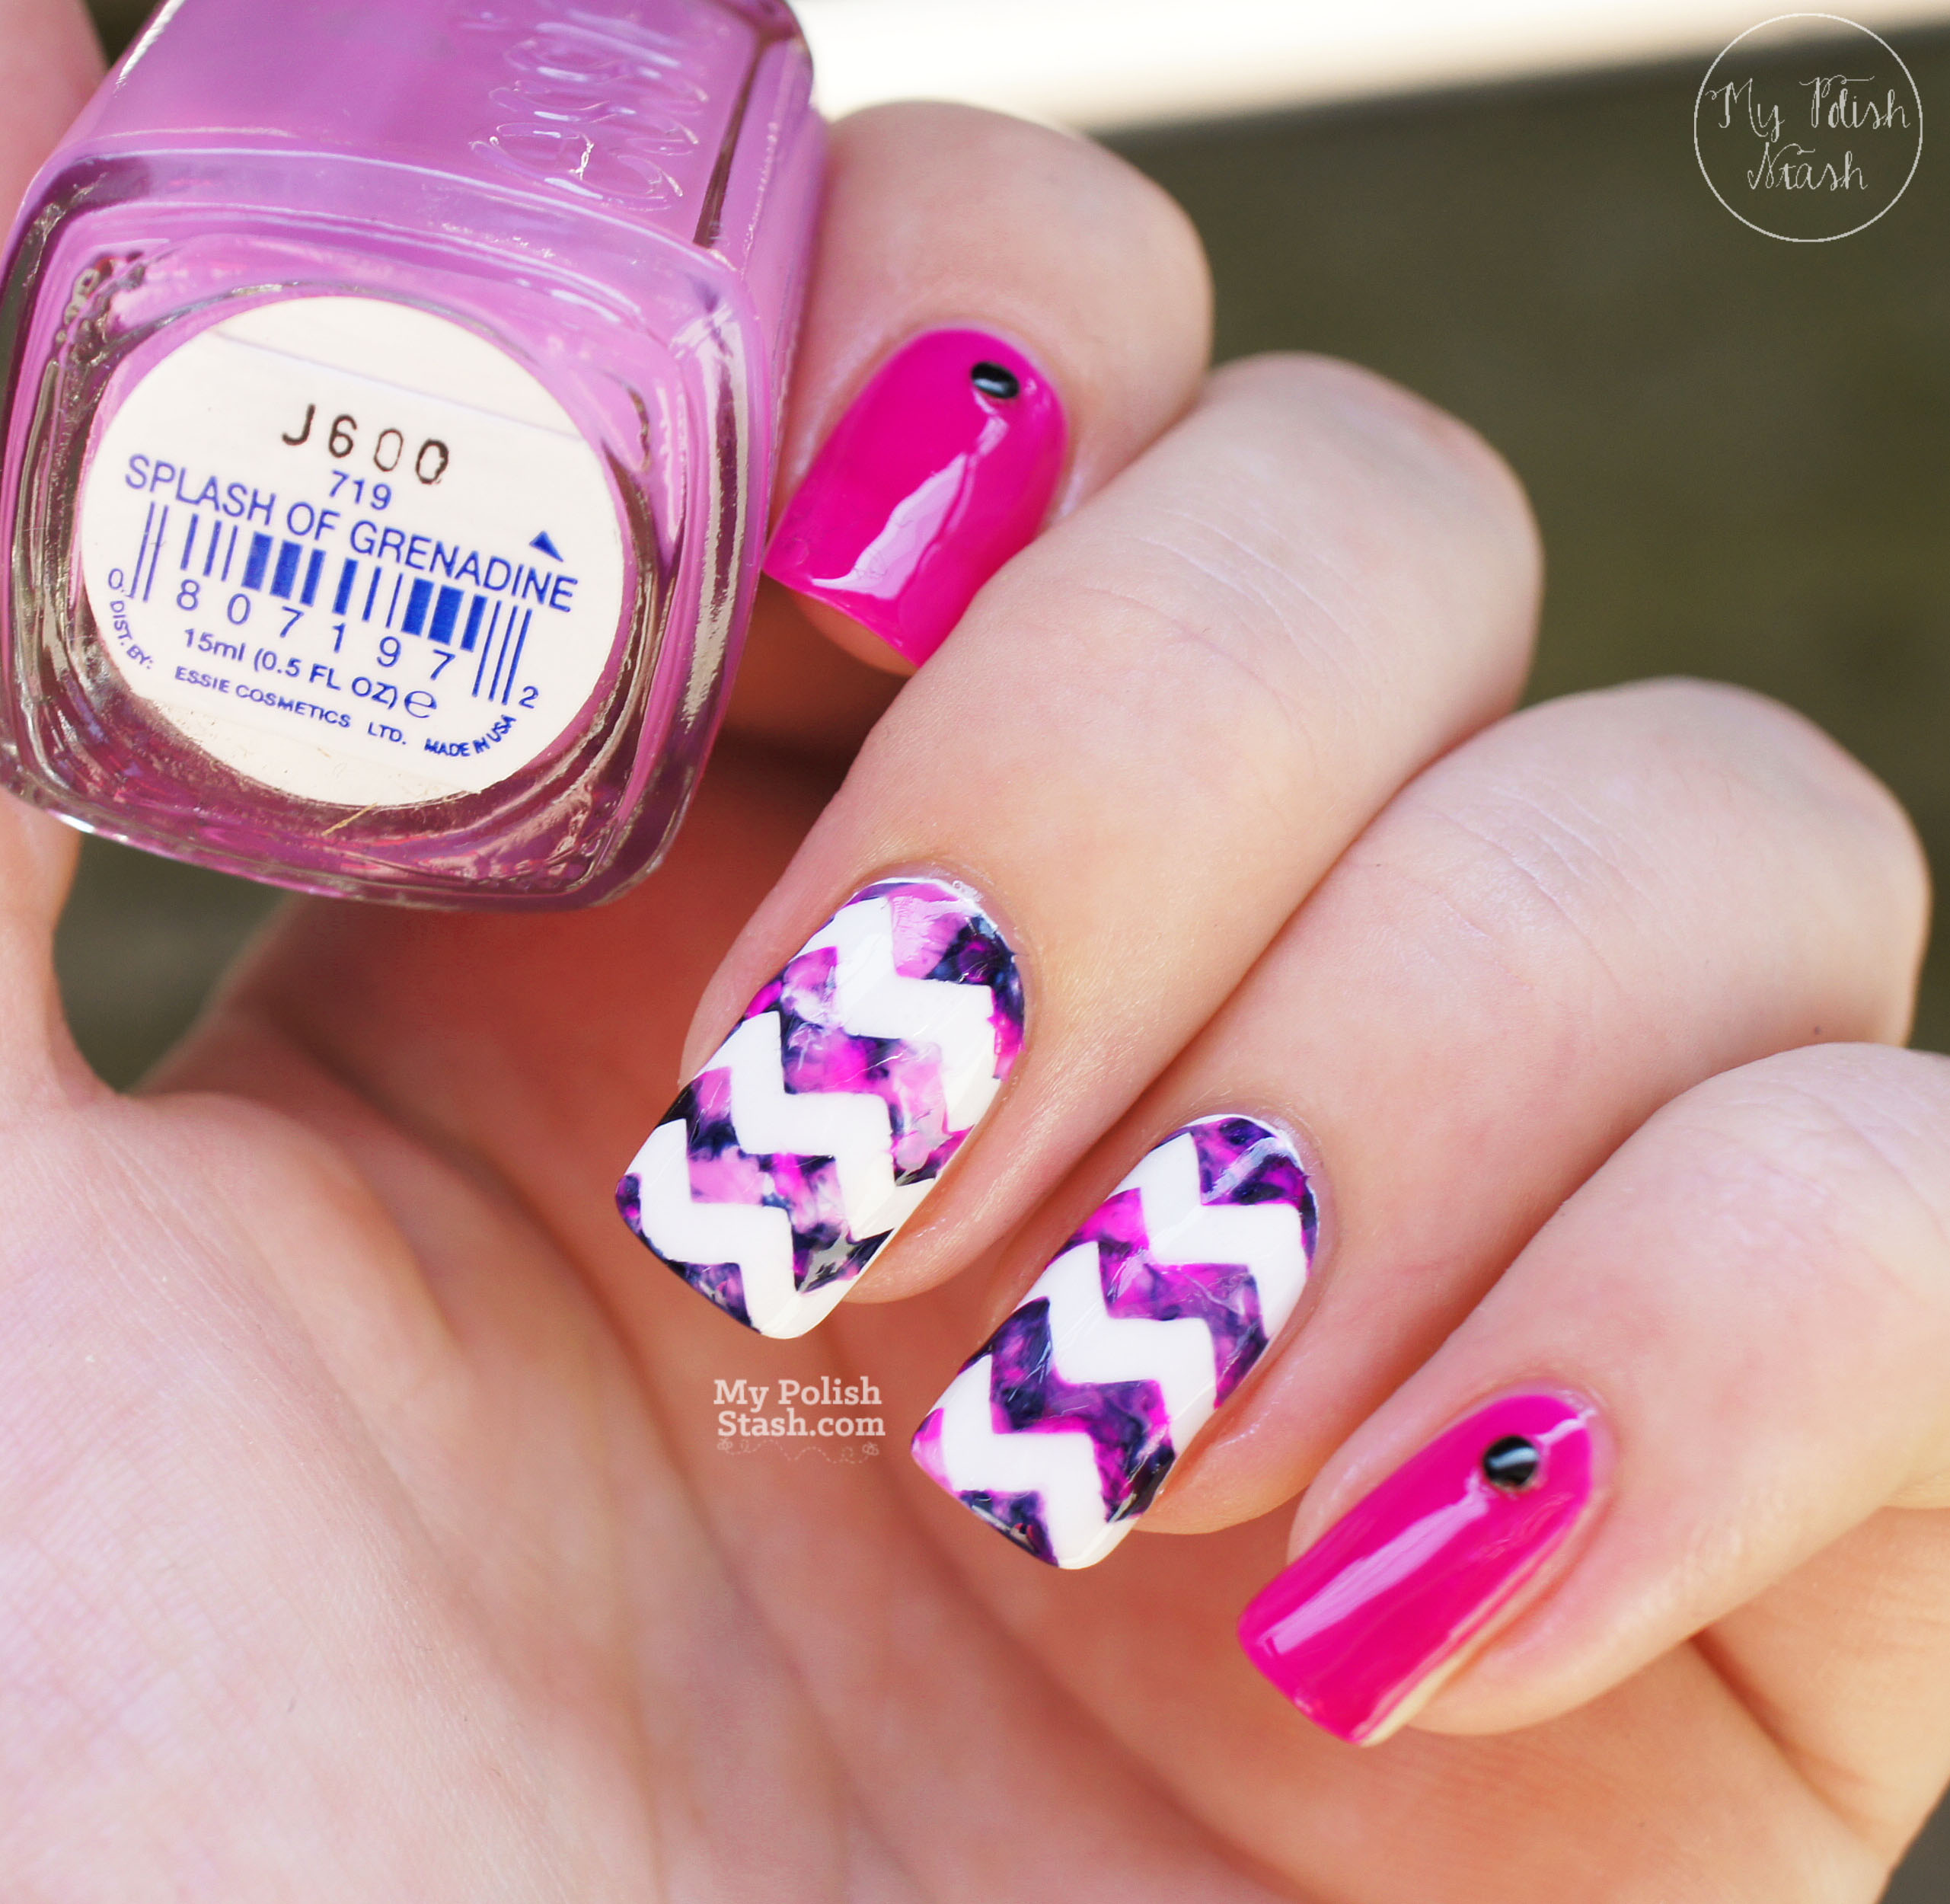 magenta-navy-marbled-chevron-nails-shade-2